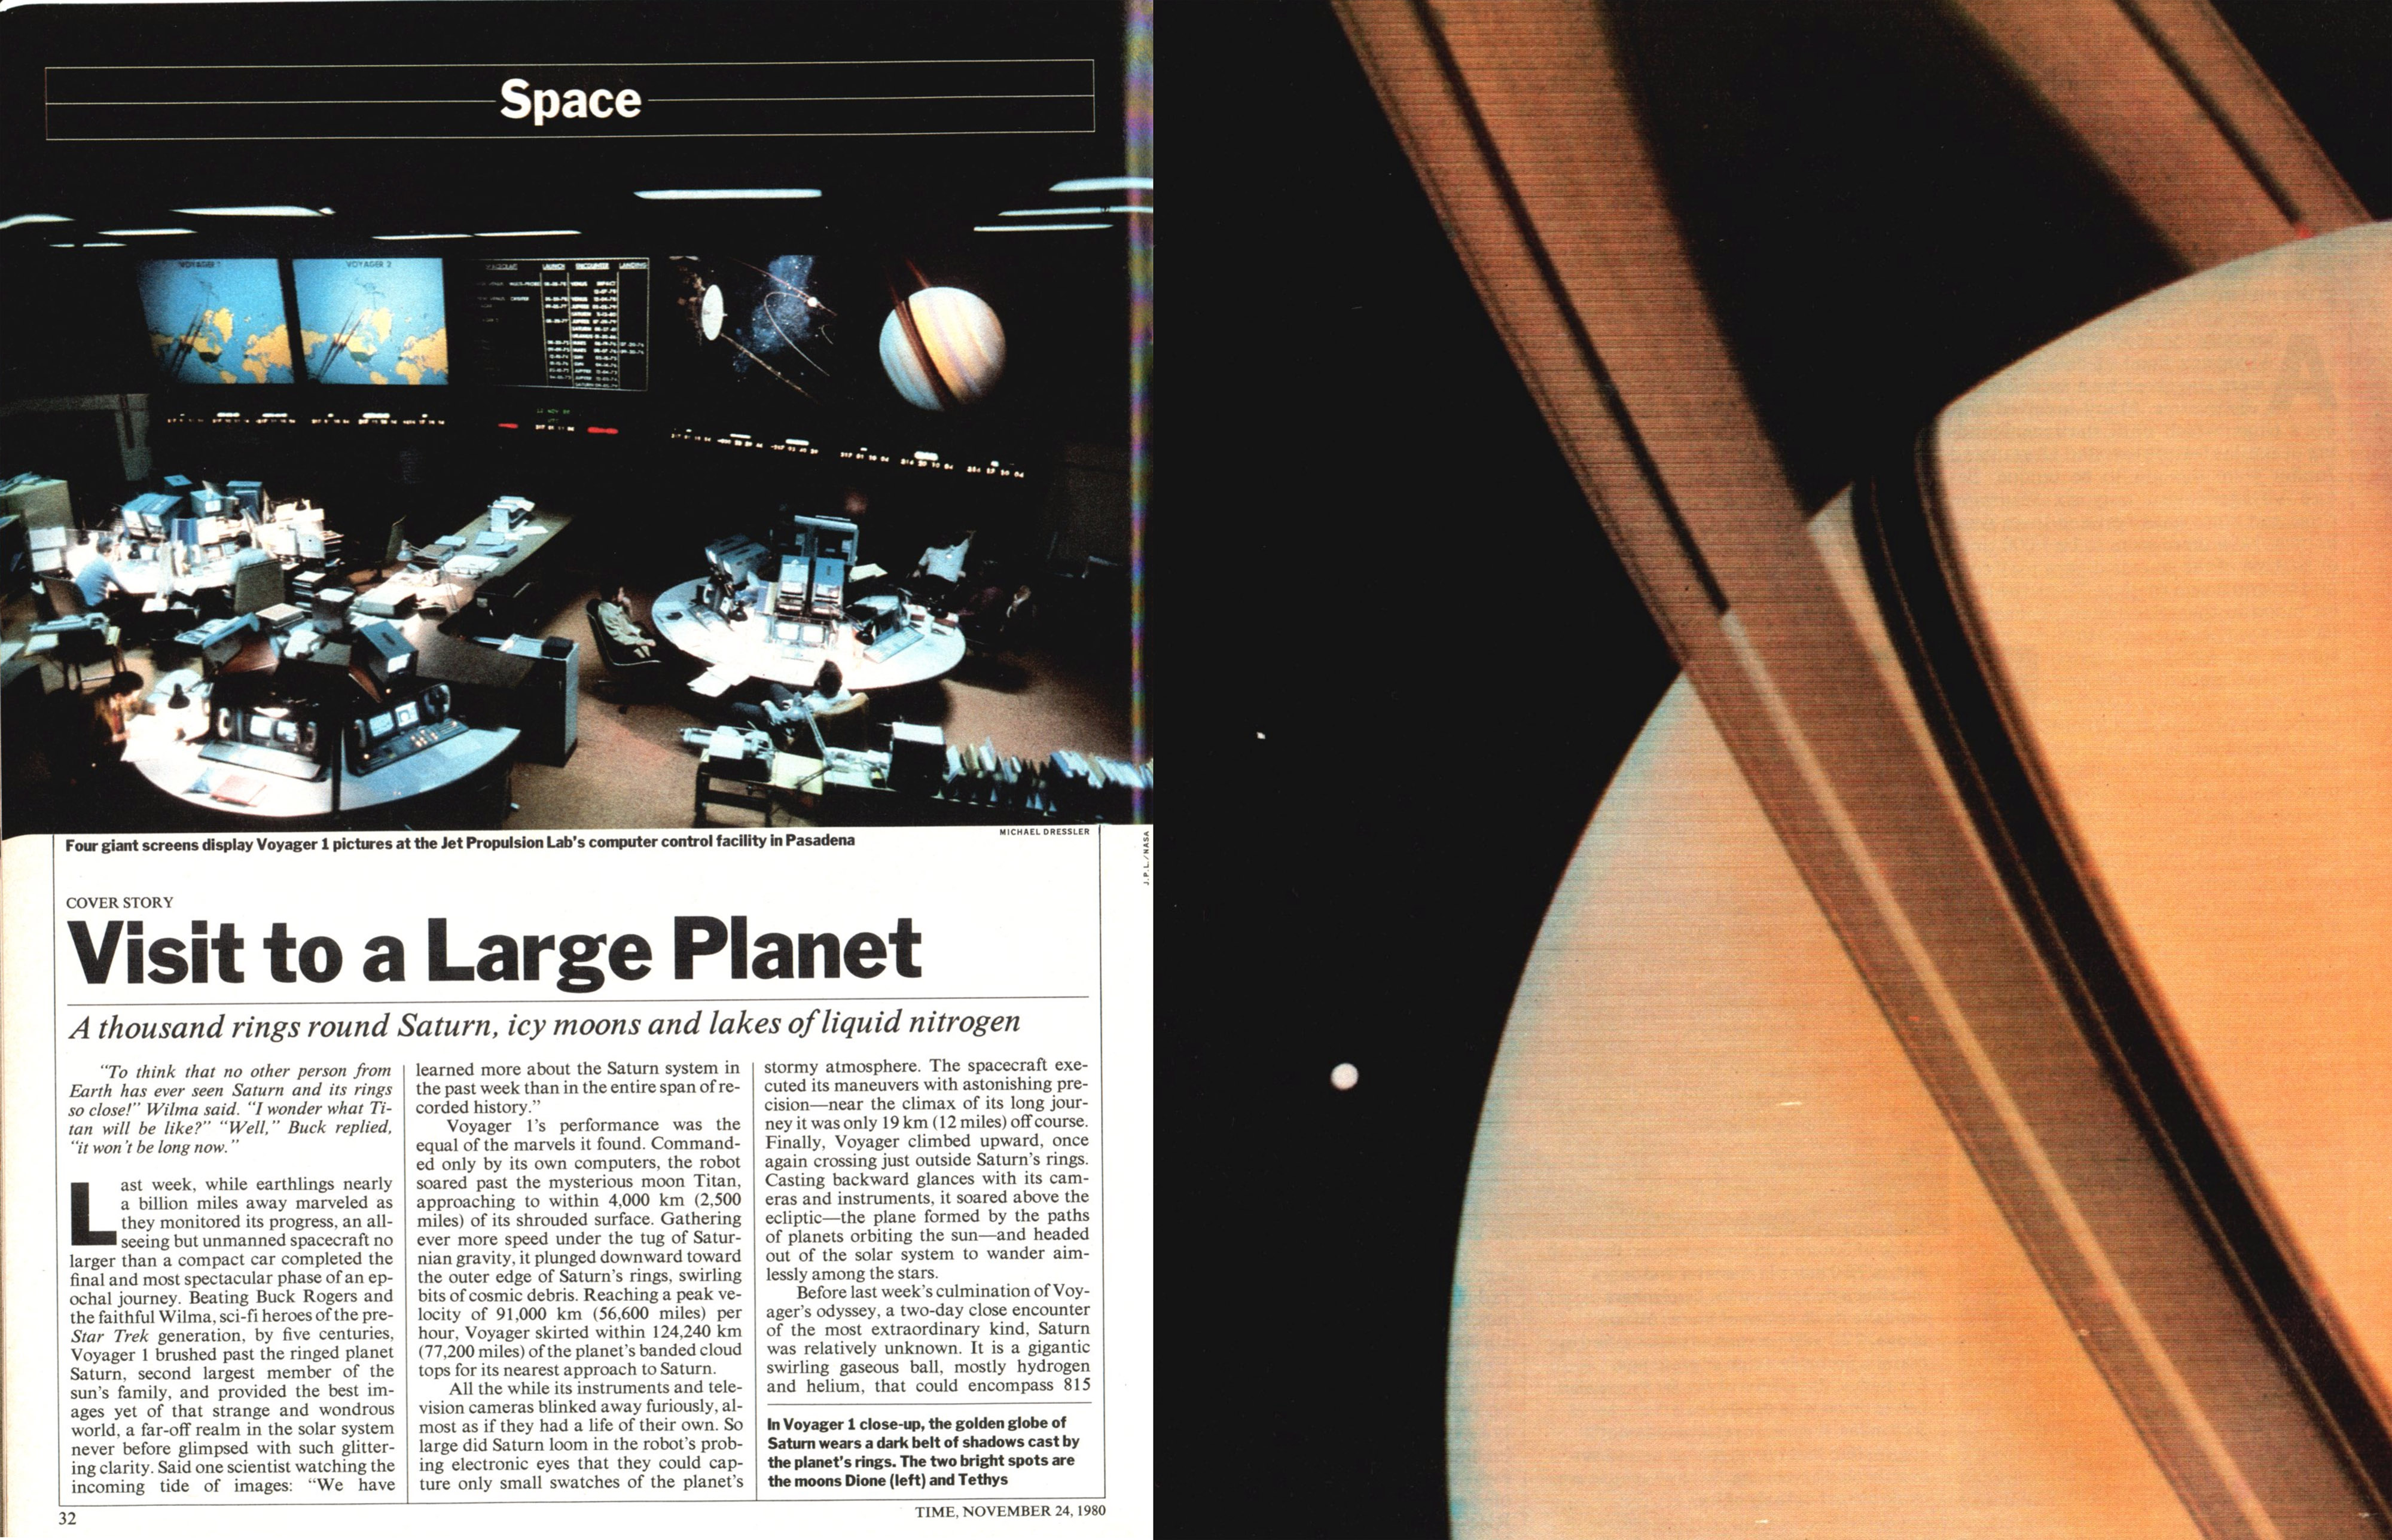 A spread from the Nov. 24, 1980, issue of TIME